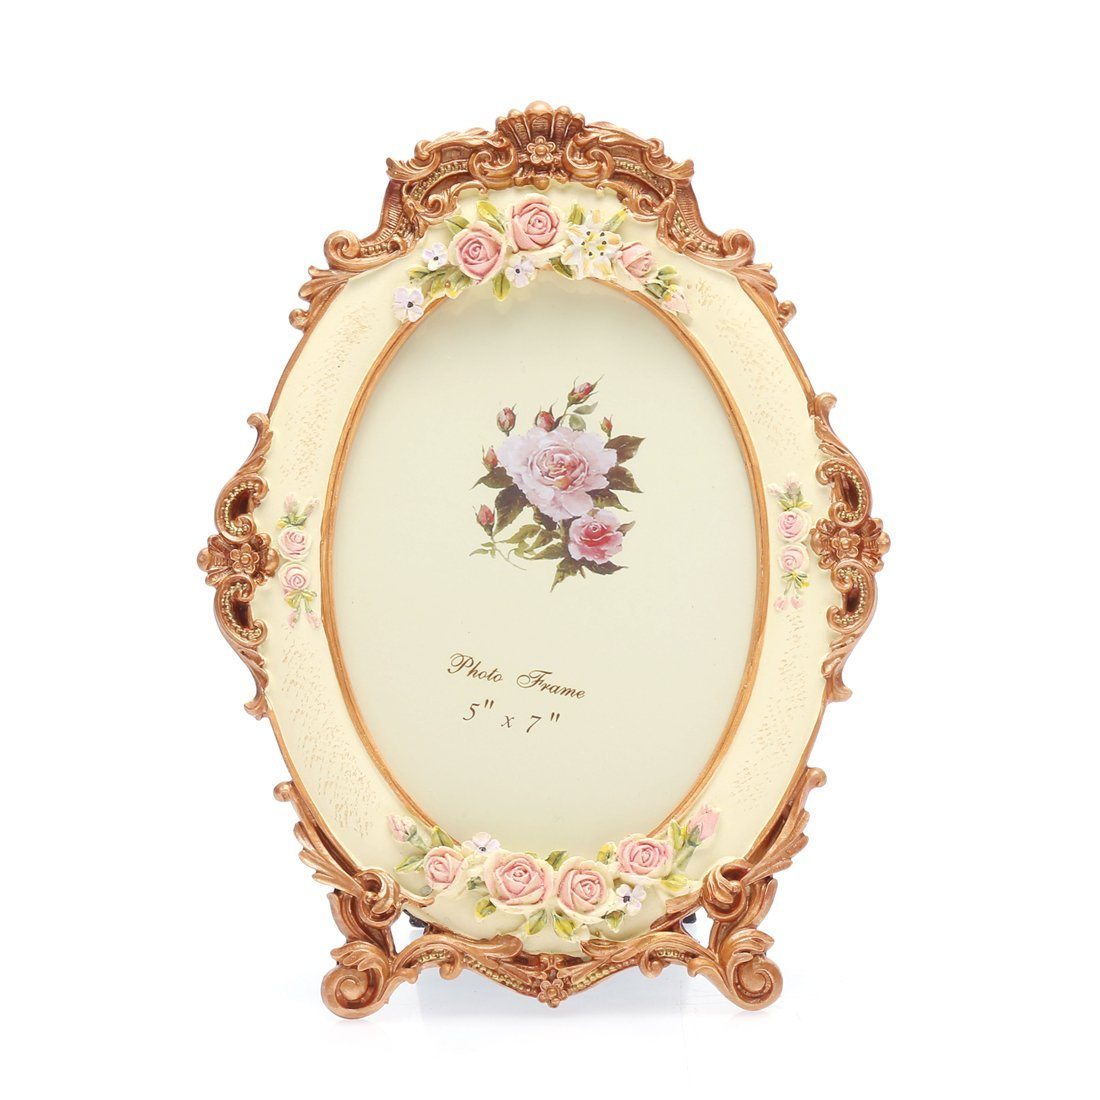 5x7 Inches Victorian Floral Oval Picture Frame